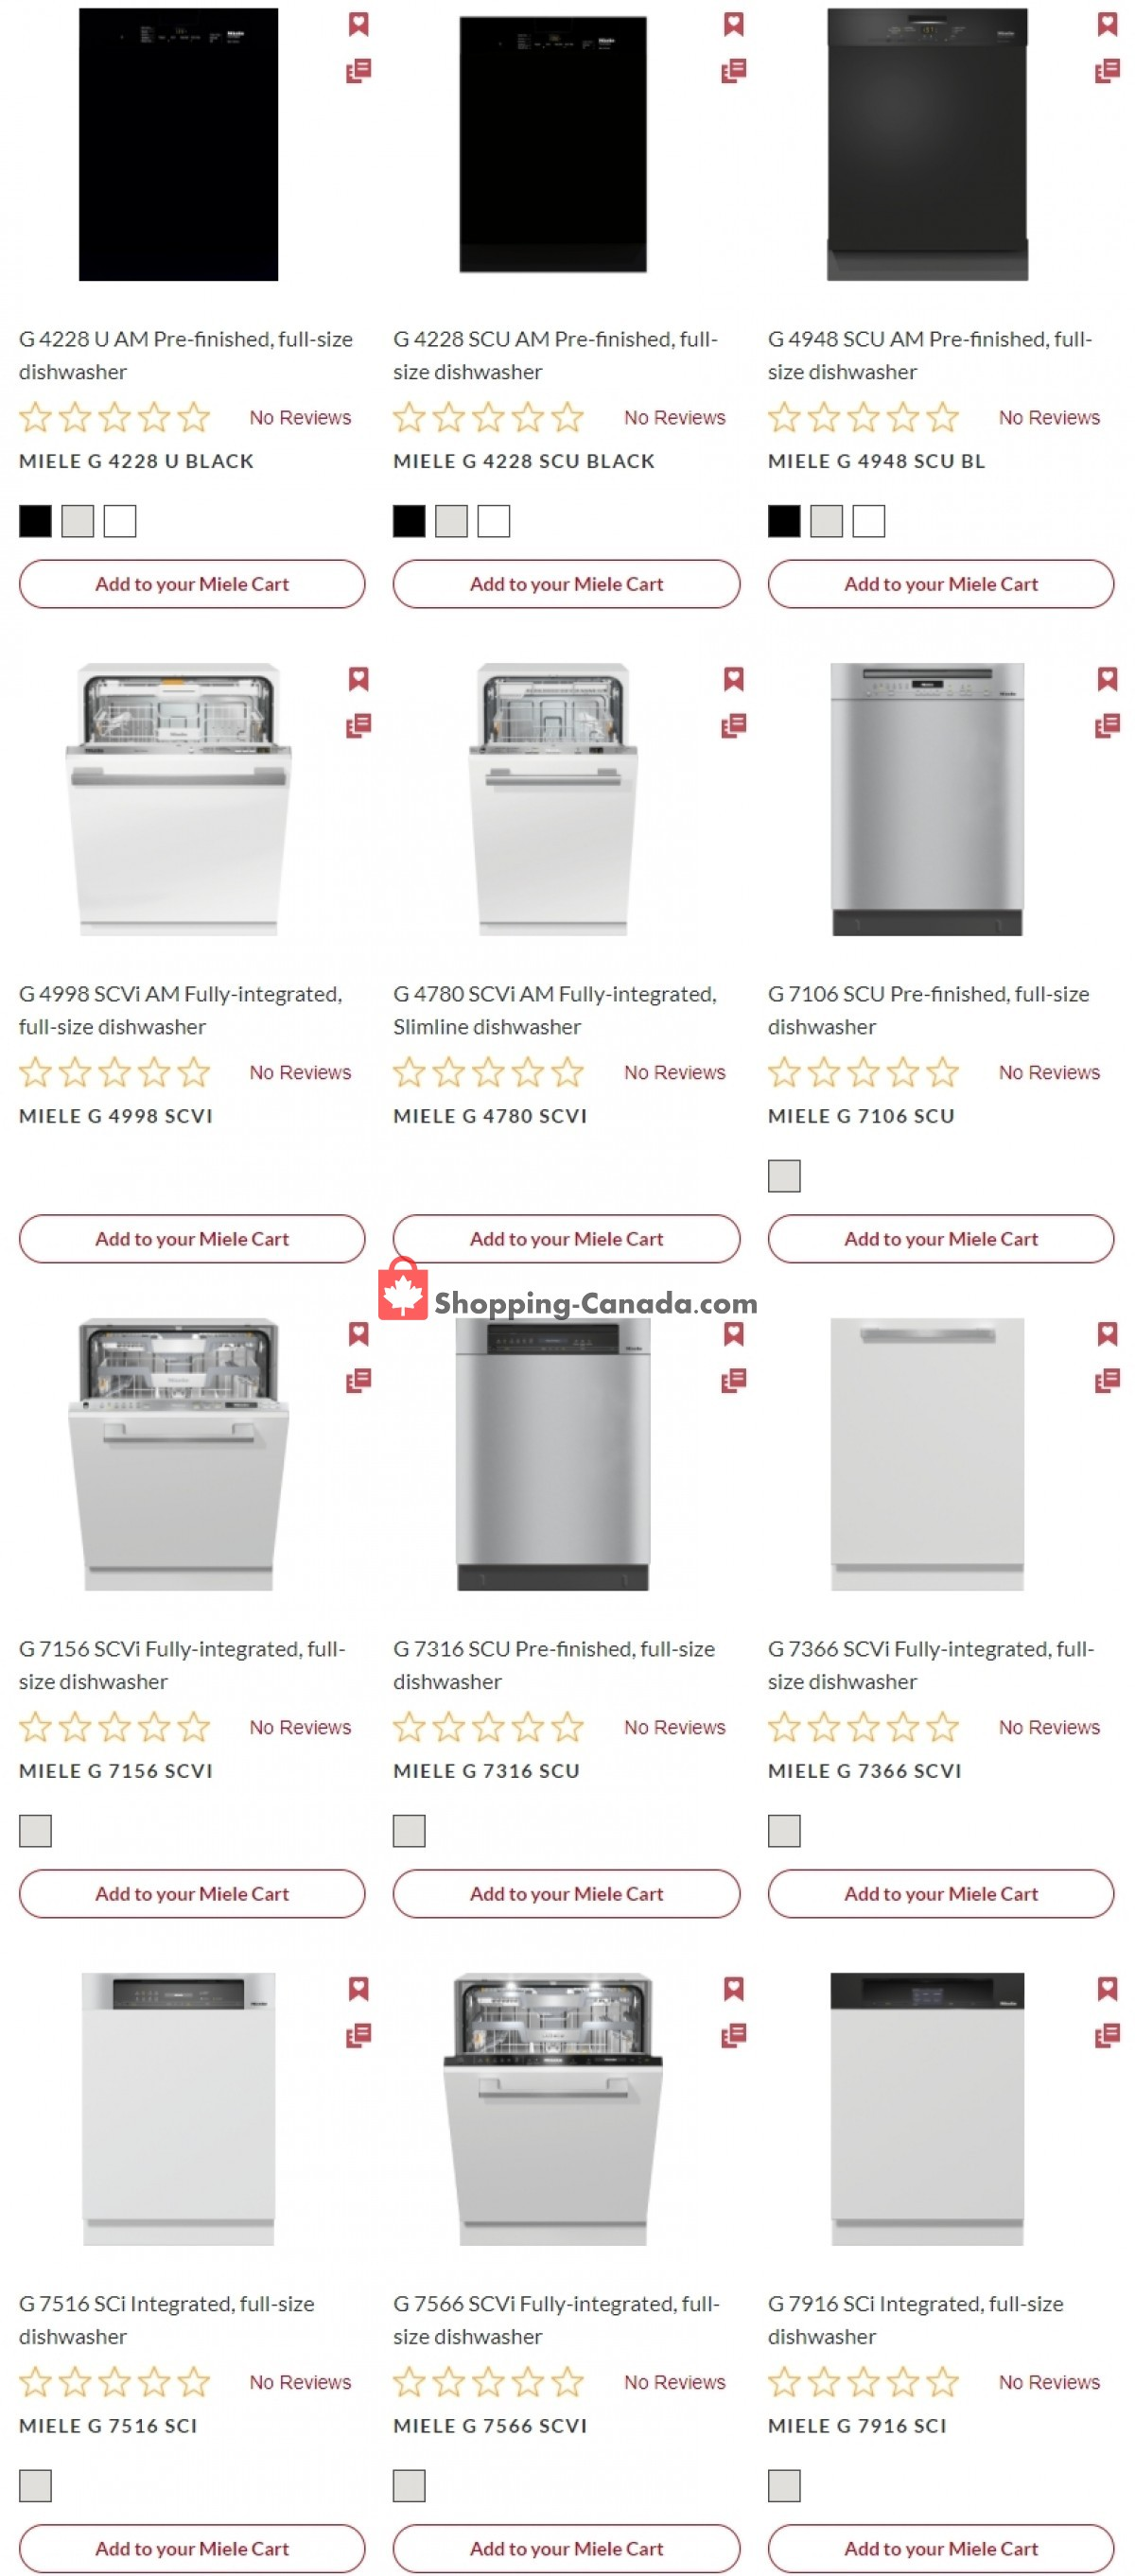 Flyer GOEMANS APPLIANCES Canada - from Friday July 16, 2021 to Thursday August 26, 2021